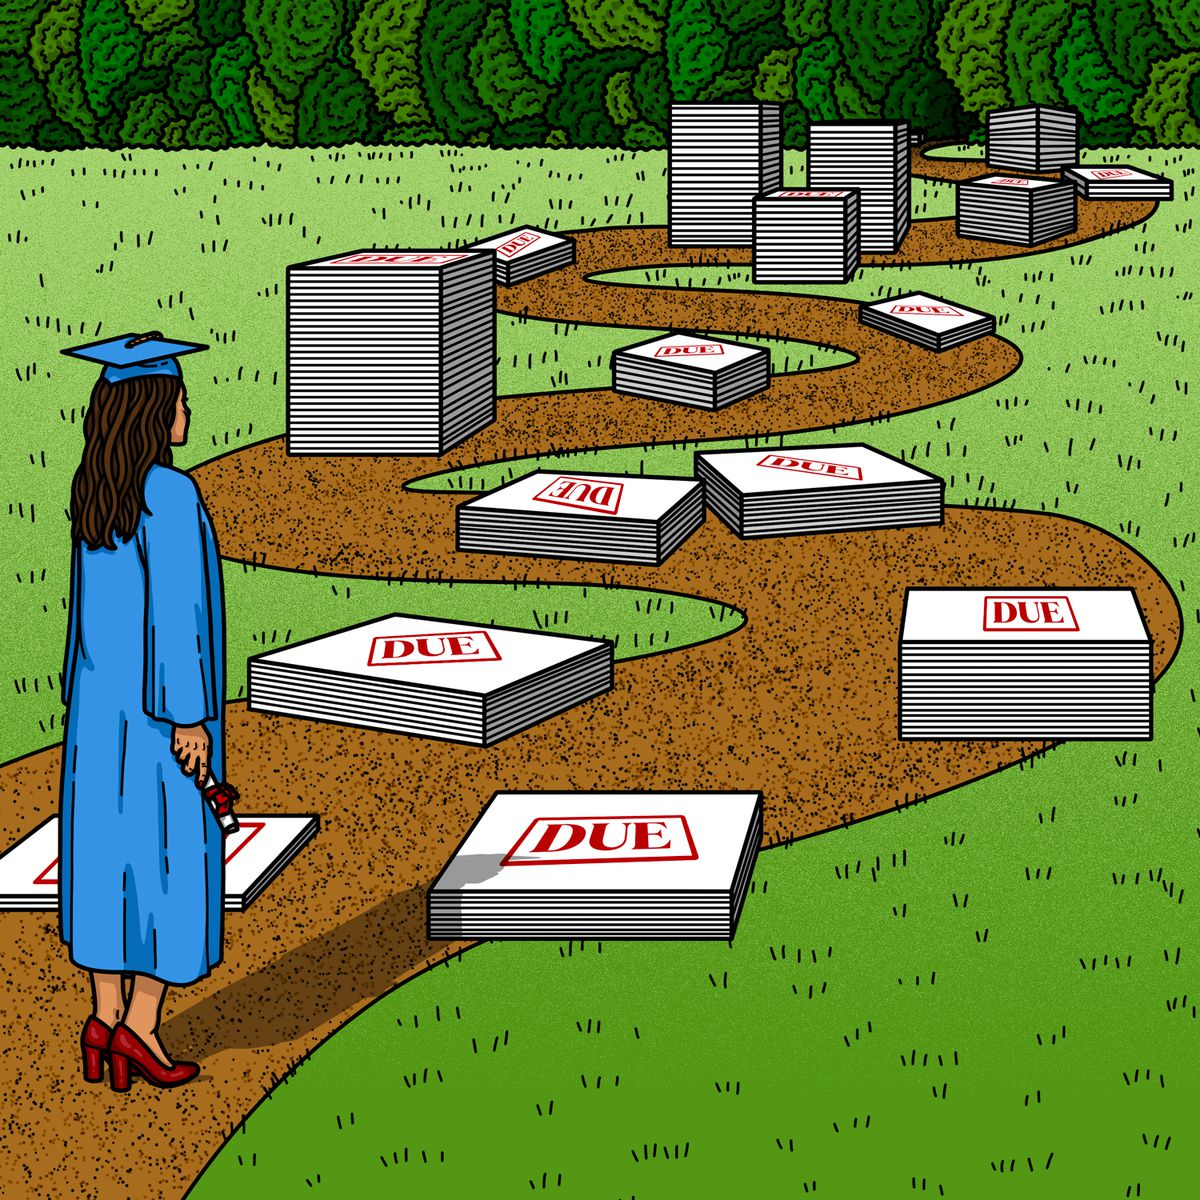 A girl in a graduation cap and gown stands at the beginning of a winding path littered with loans